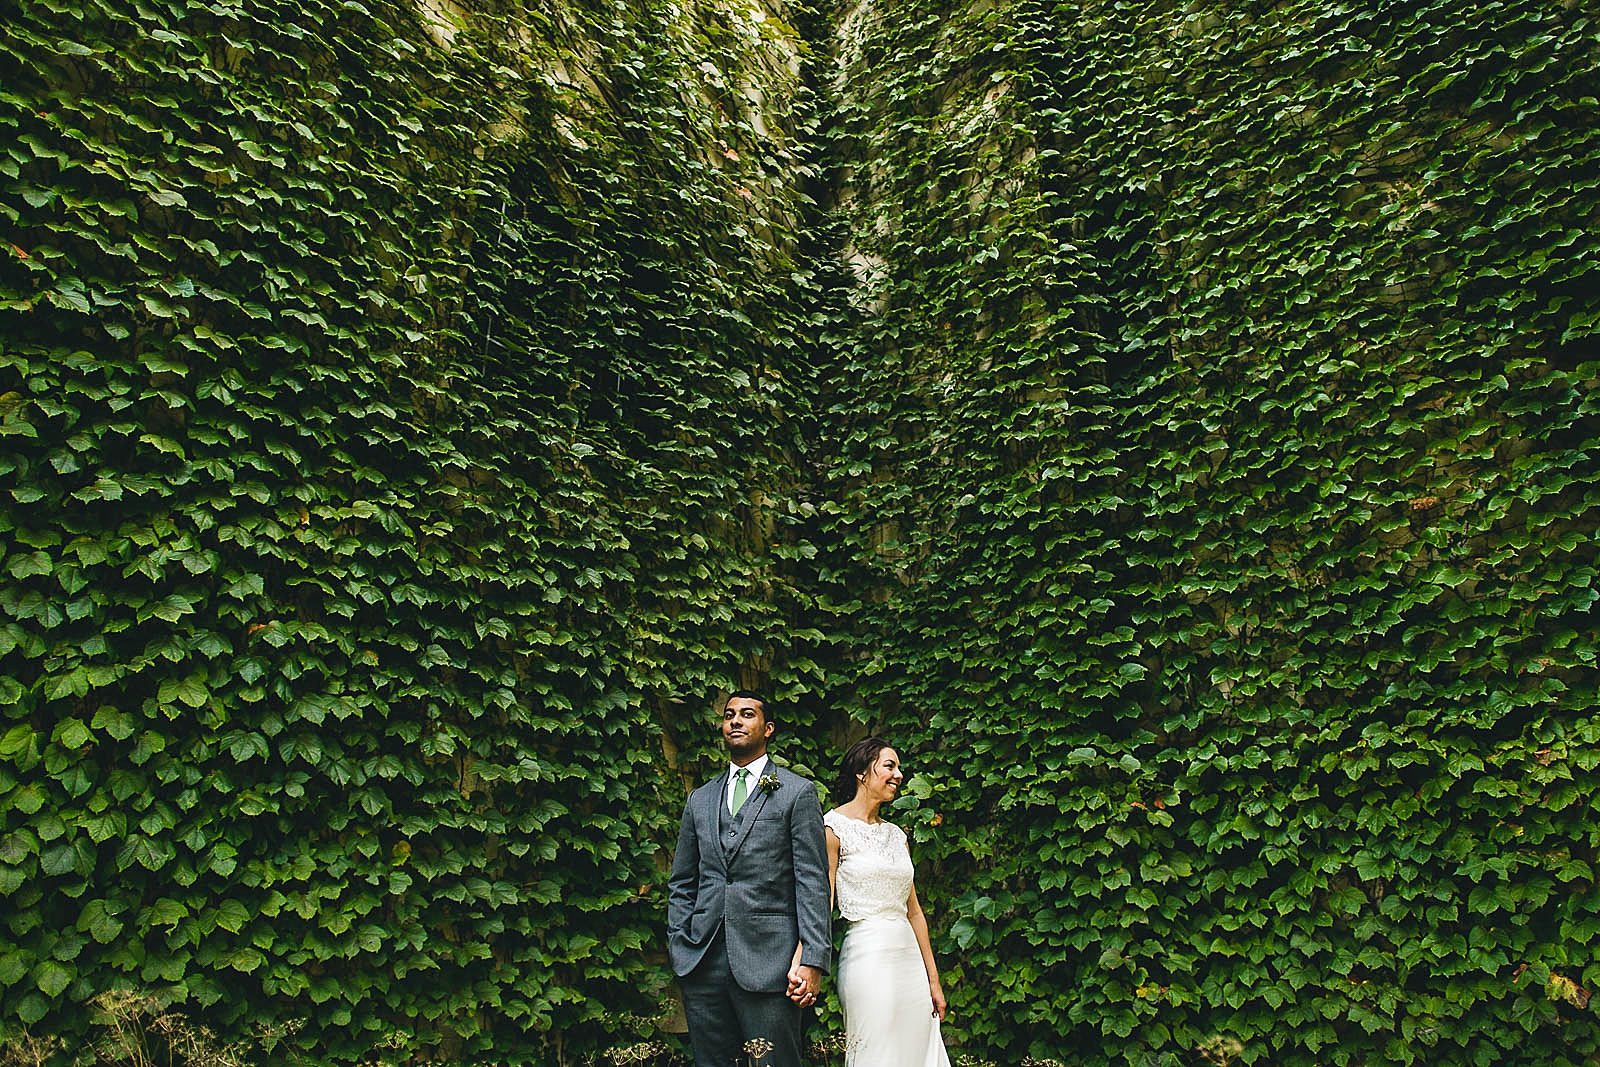 15 best chicago wedding pics - Wedding at Bridgeport Art Center // Kylie + Sean